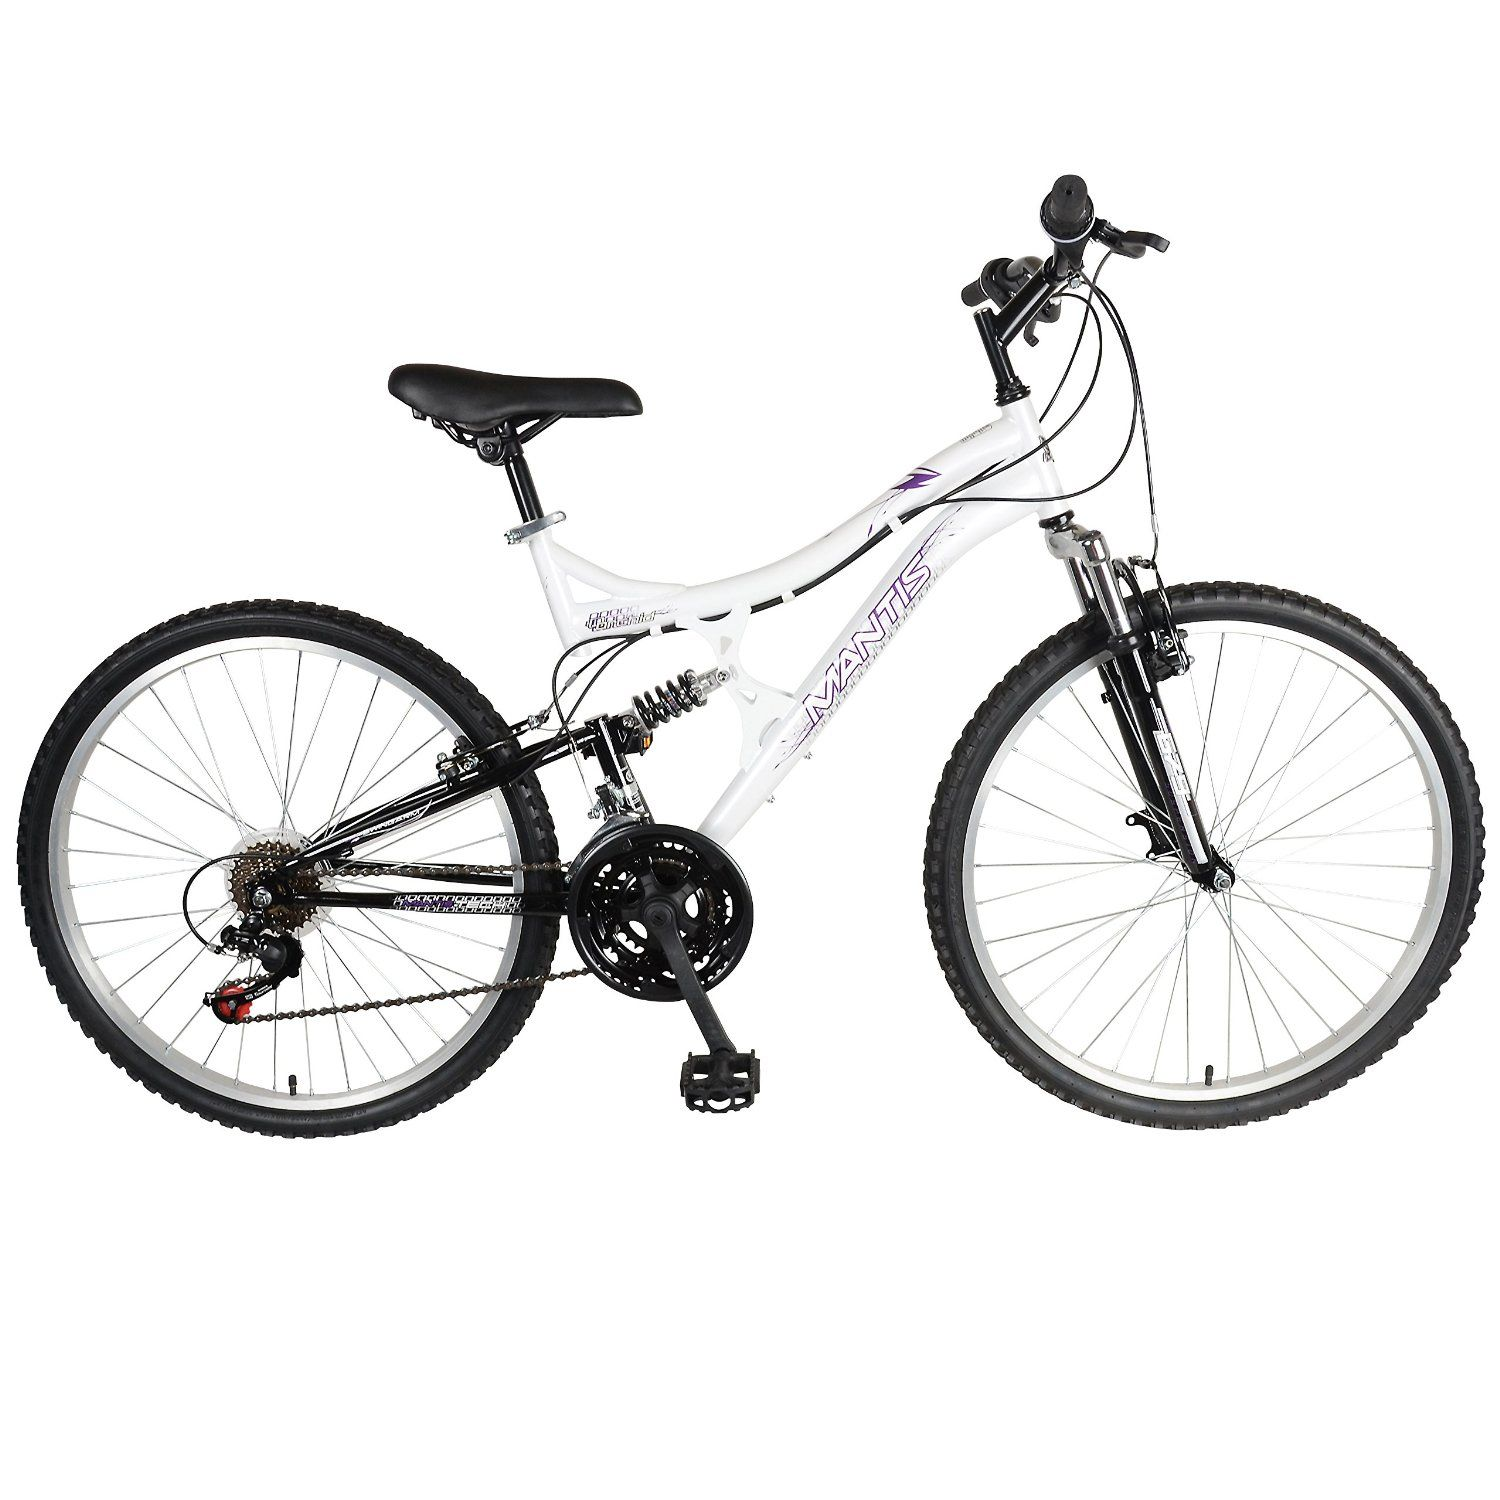 Mantis Orchid Full Suspension Mountain Bike 26 Inch